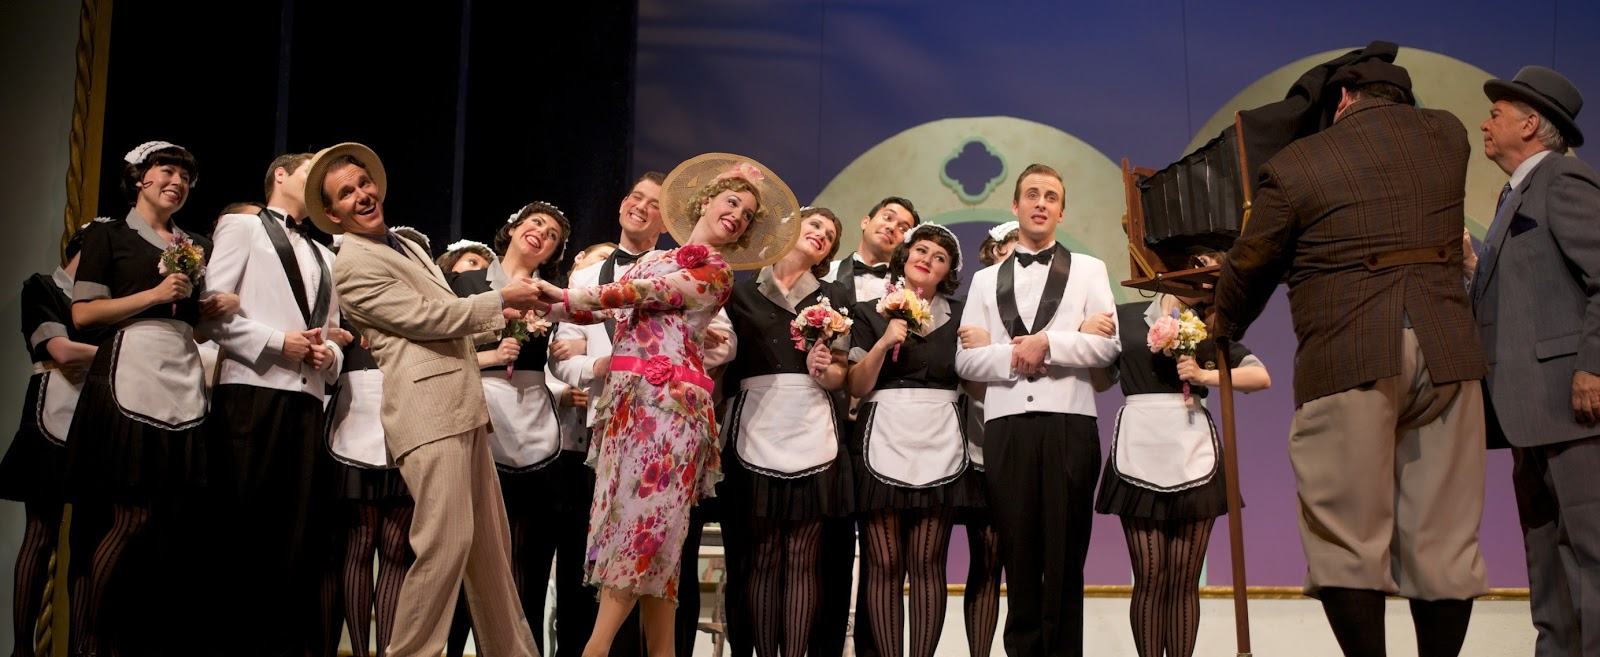 """Oh, Kay!"" at Ohio Light Opera, with Nathan Brian, Jessamyn Anderson, & cast. (Photo: Matt Dilyard)"